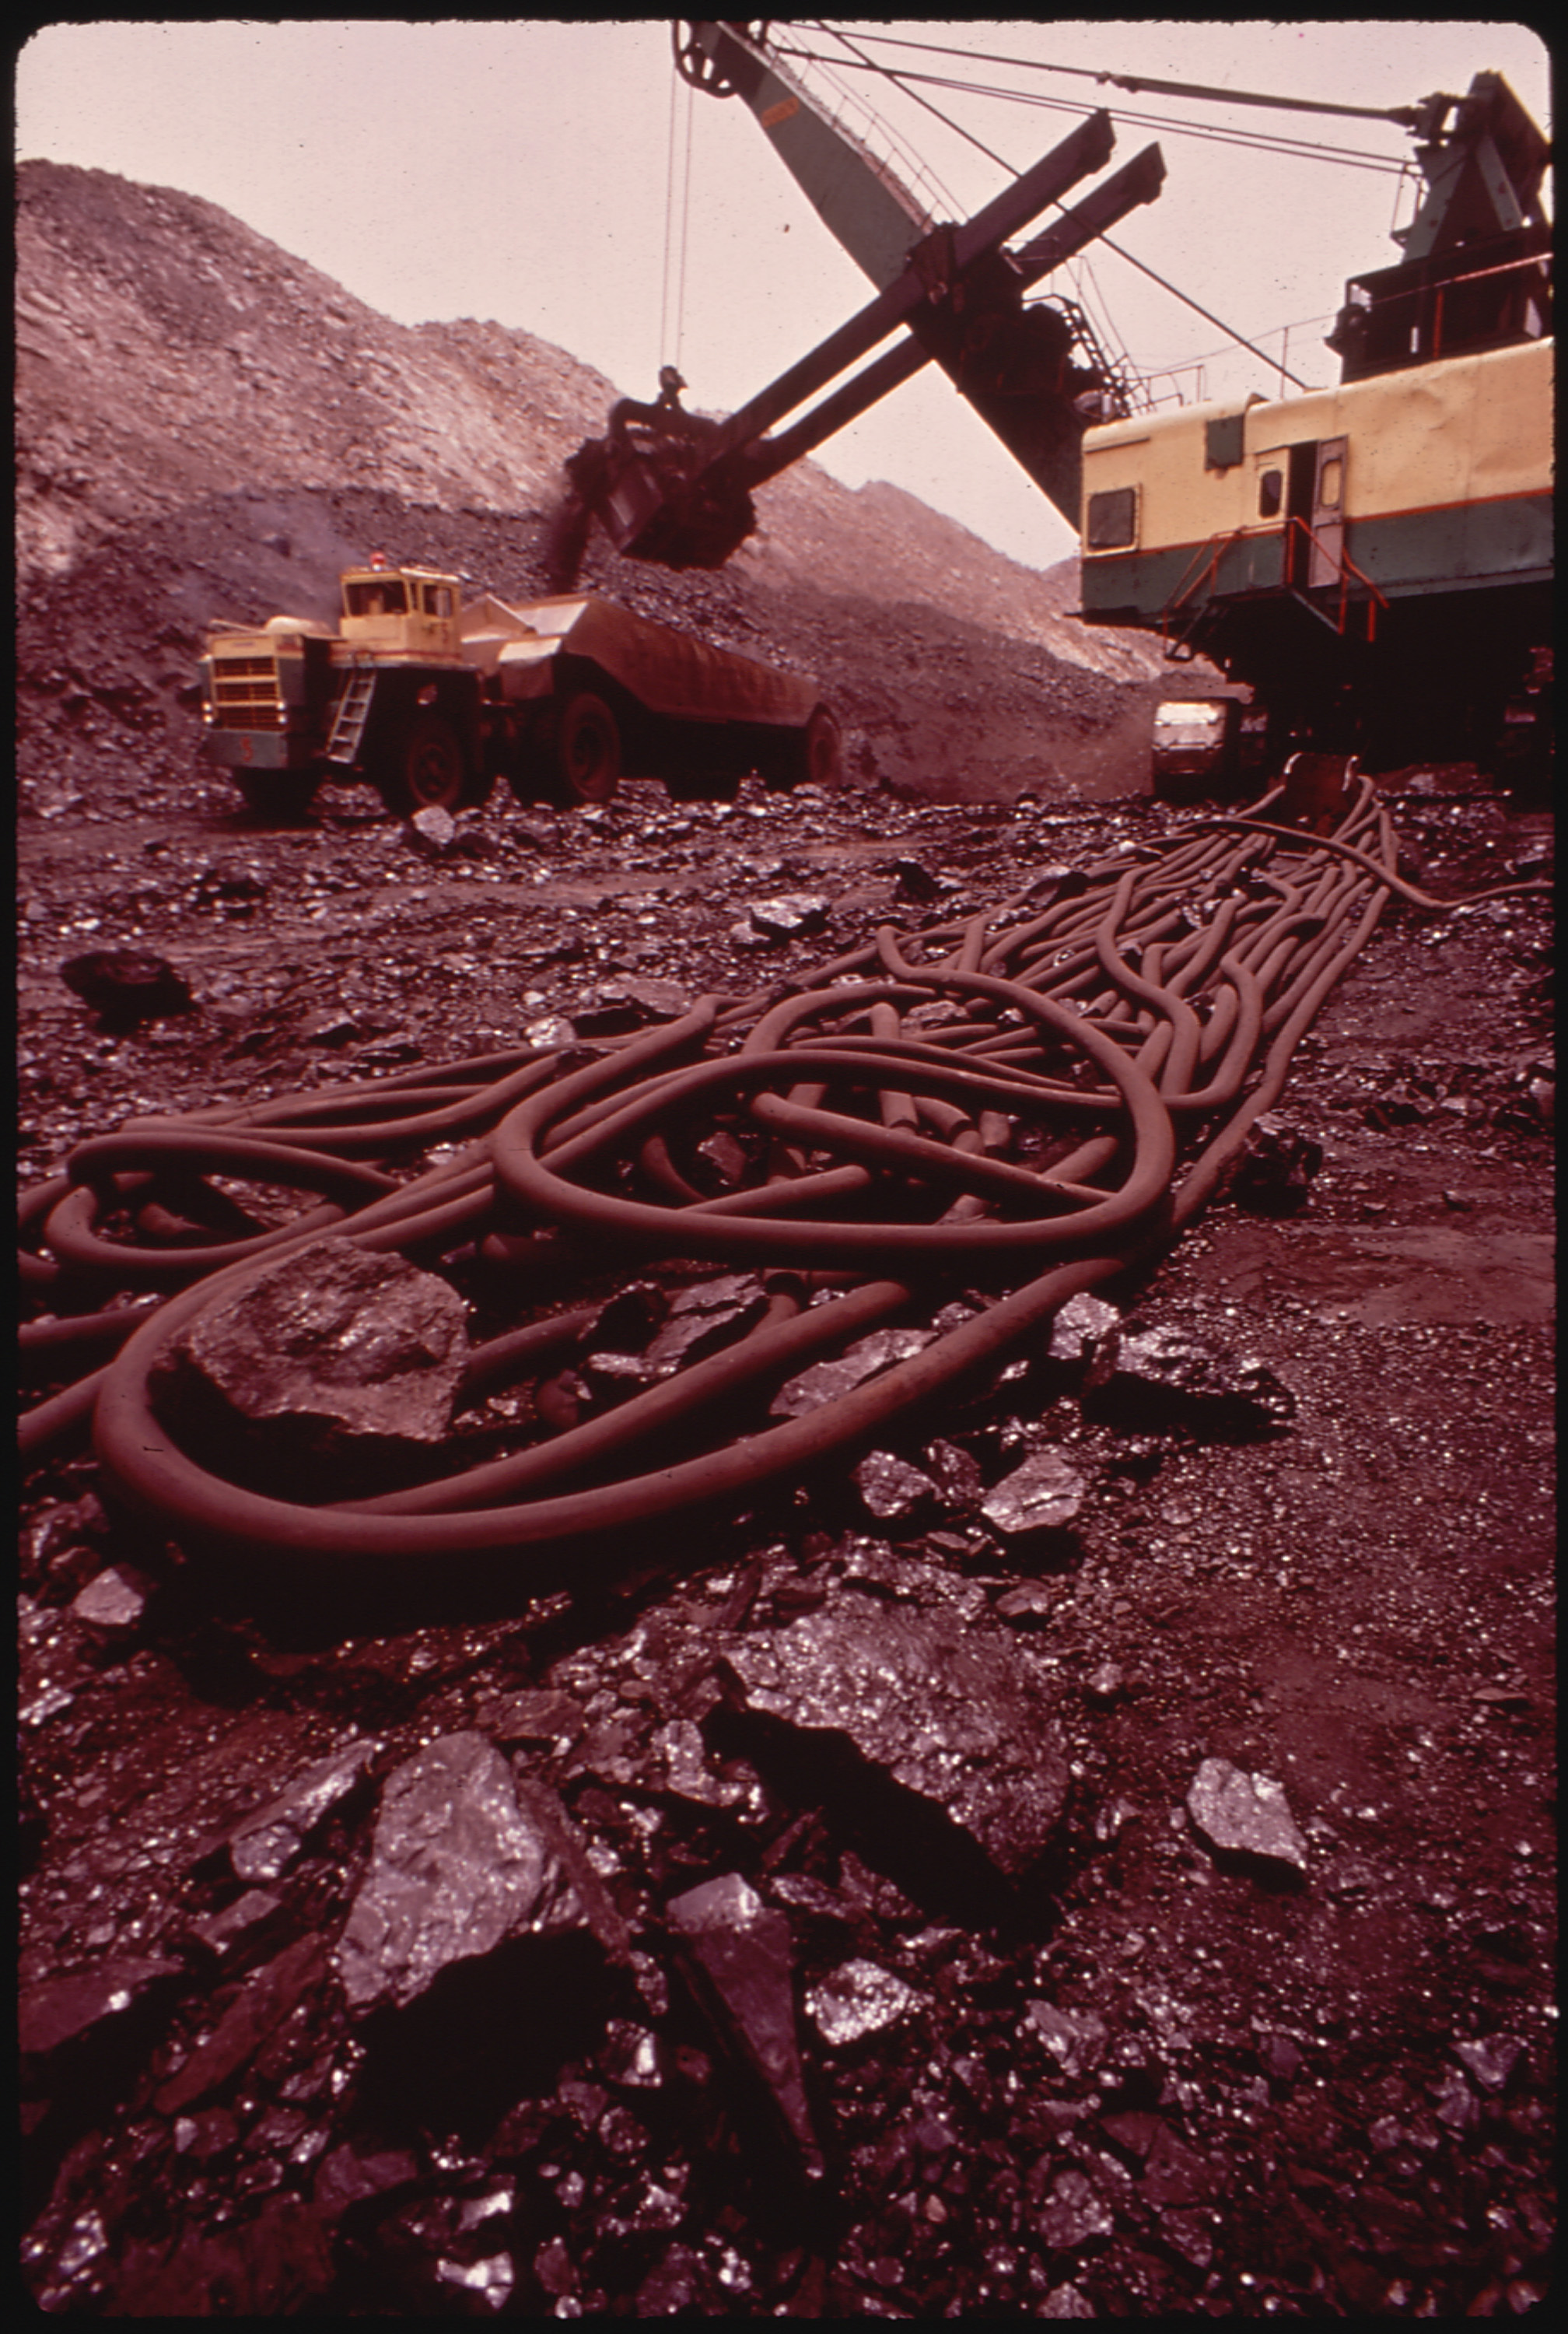 file dragline used instrip mining at the navajo mine in northern